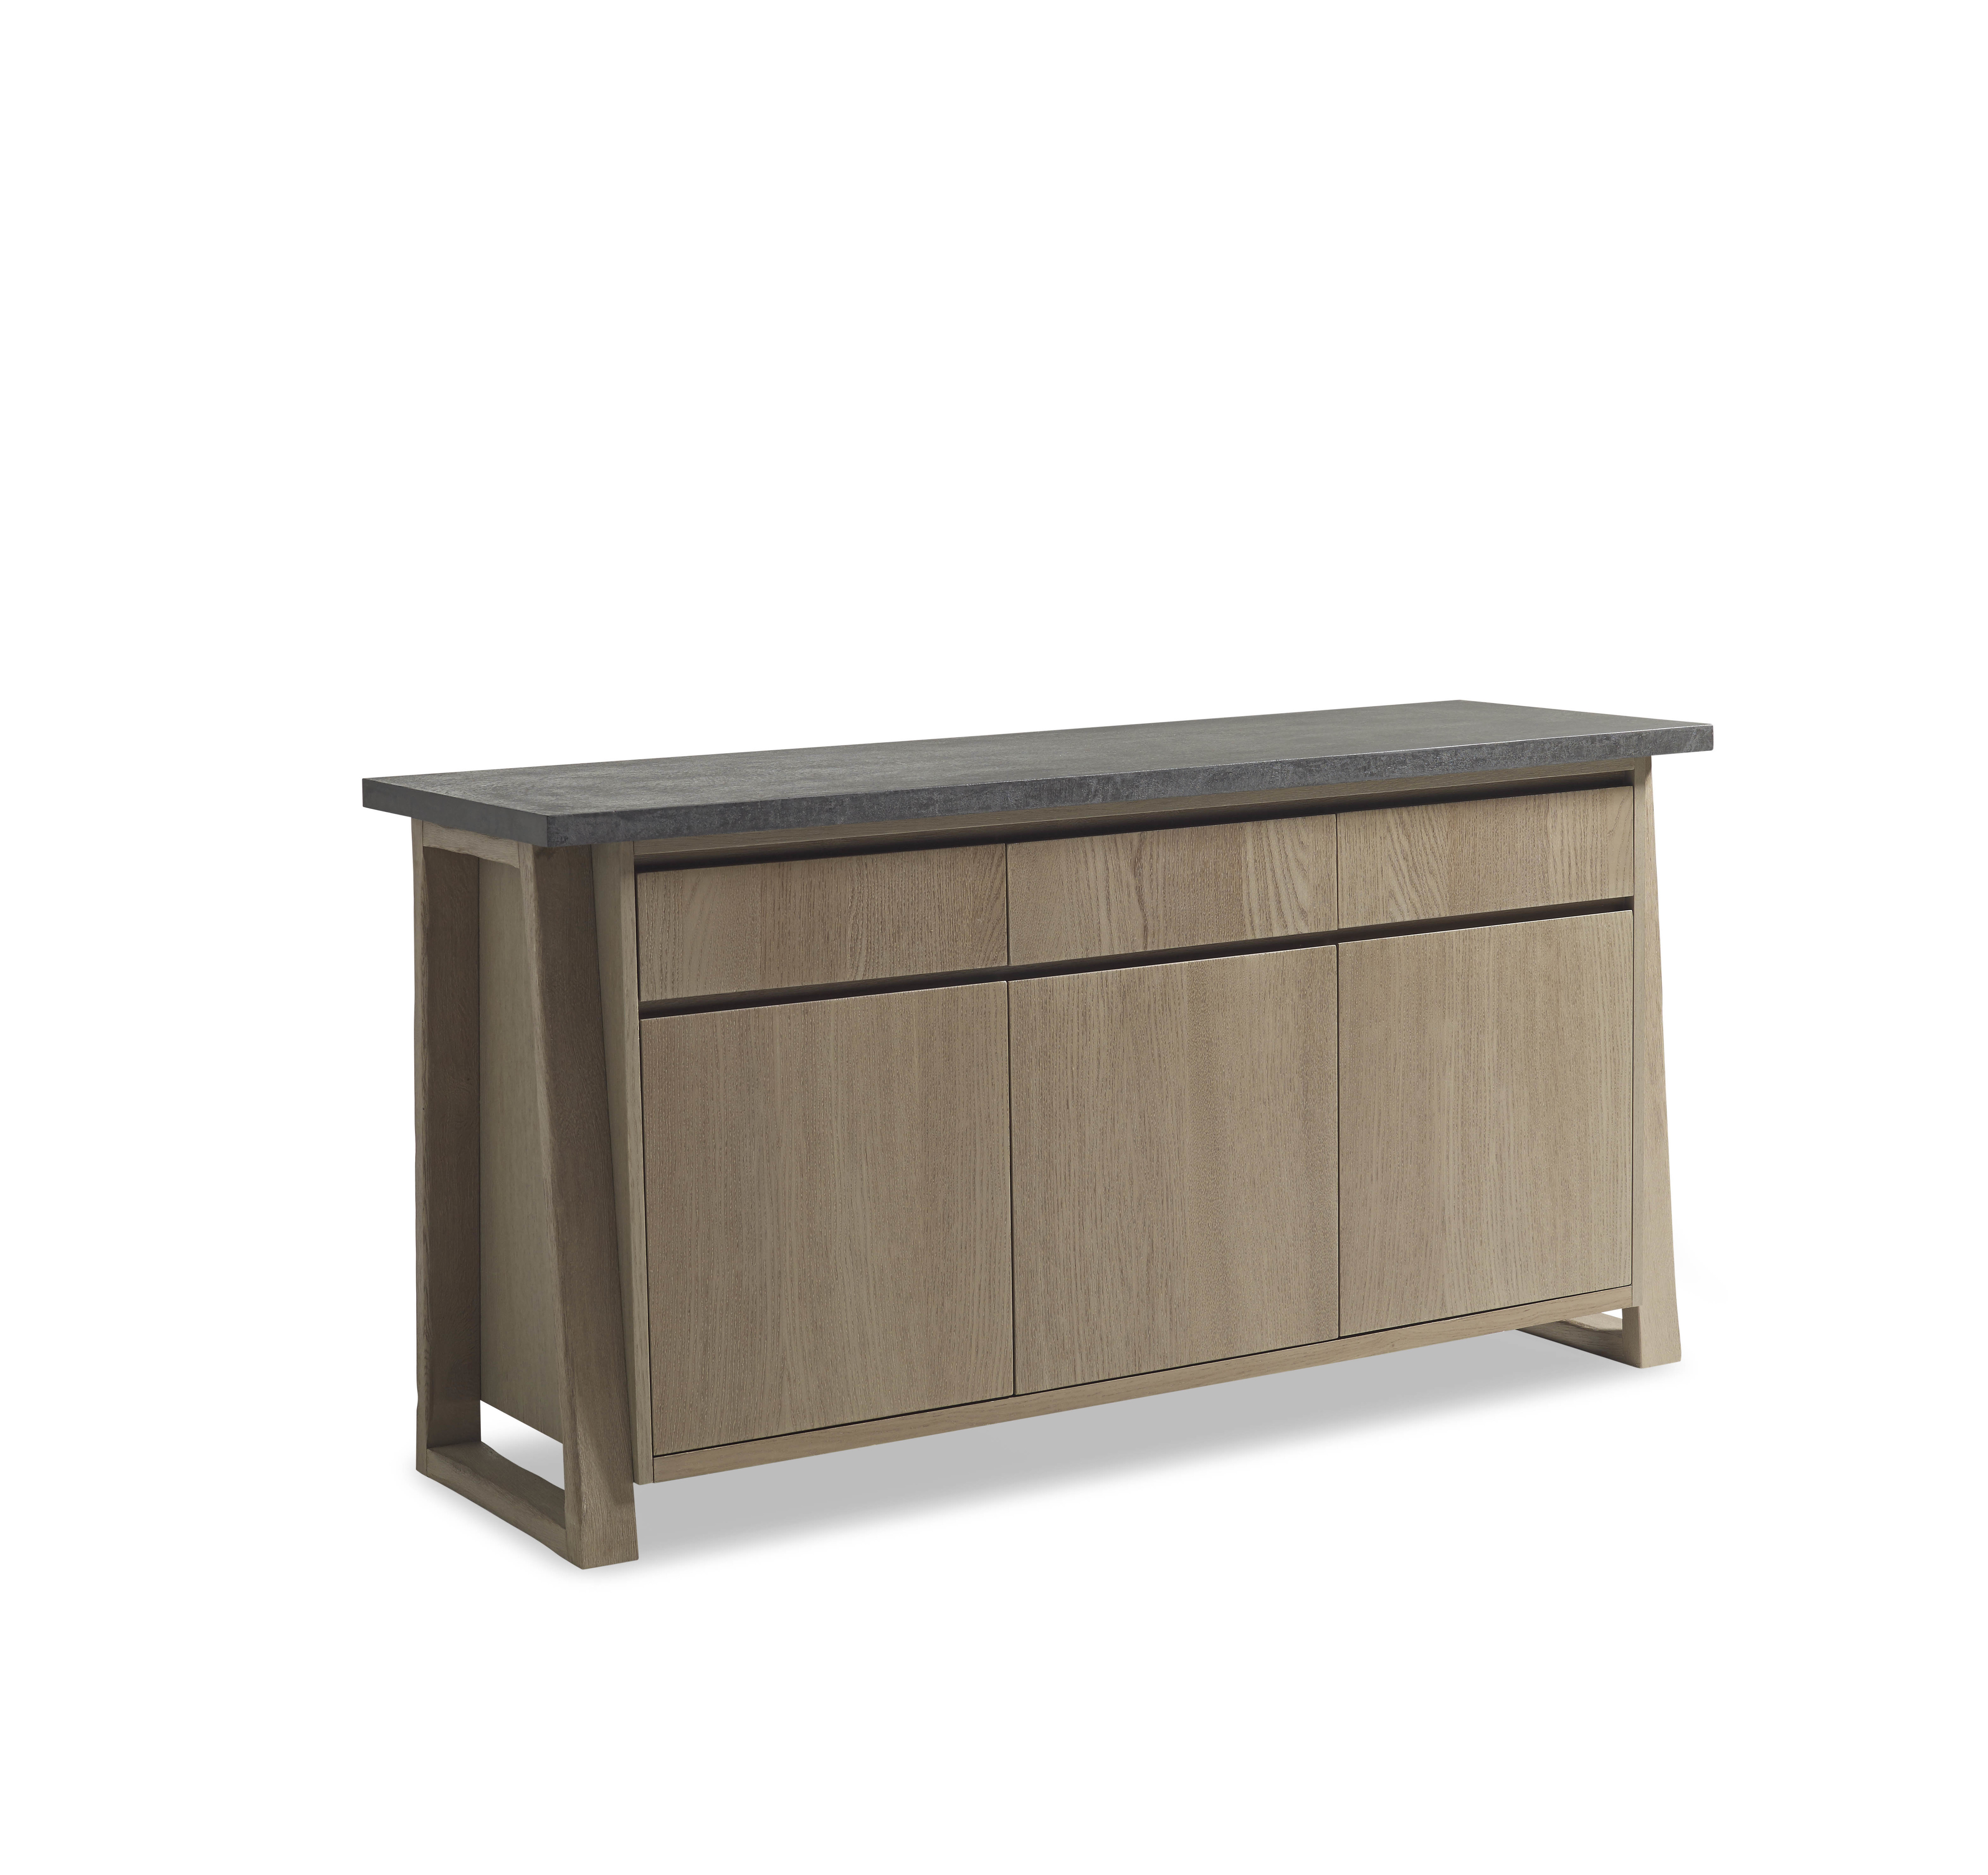 Designer Sideboards - Modern Sideboards | Matthew Izzo for Jacklyn 3 Door Sideboards (Image 8 of 30)